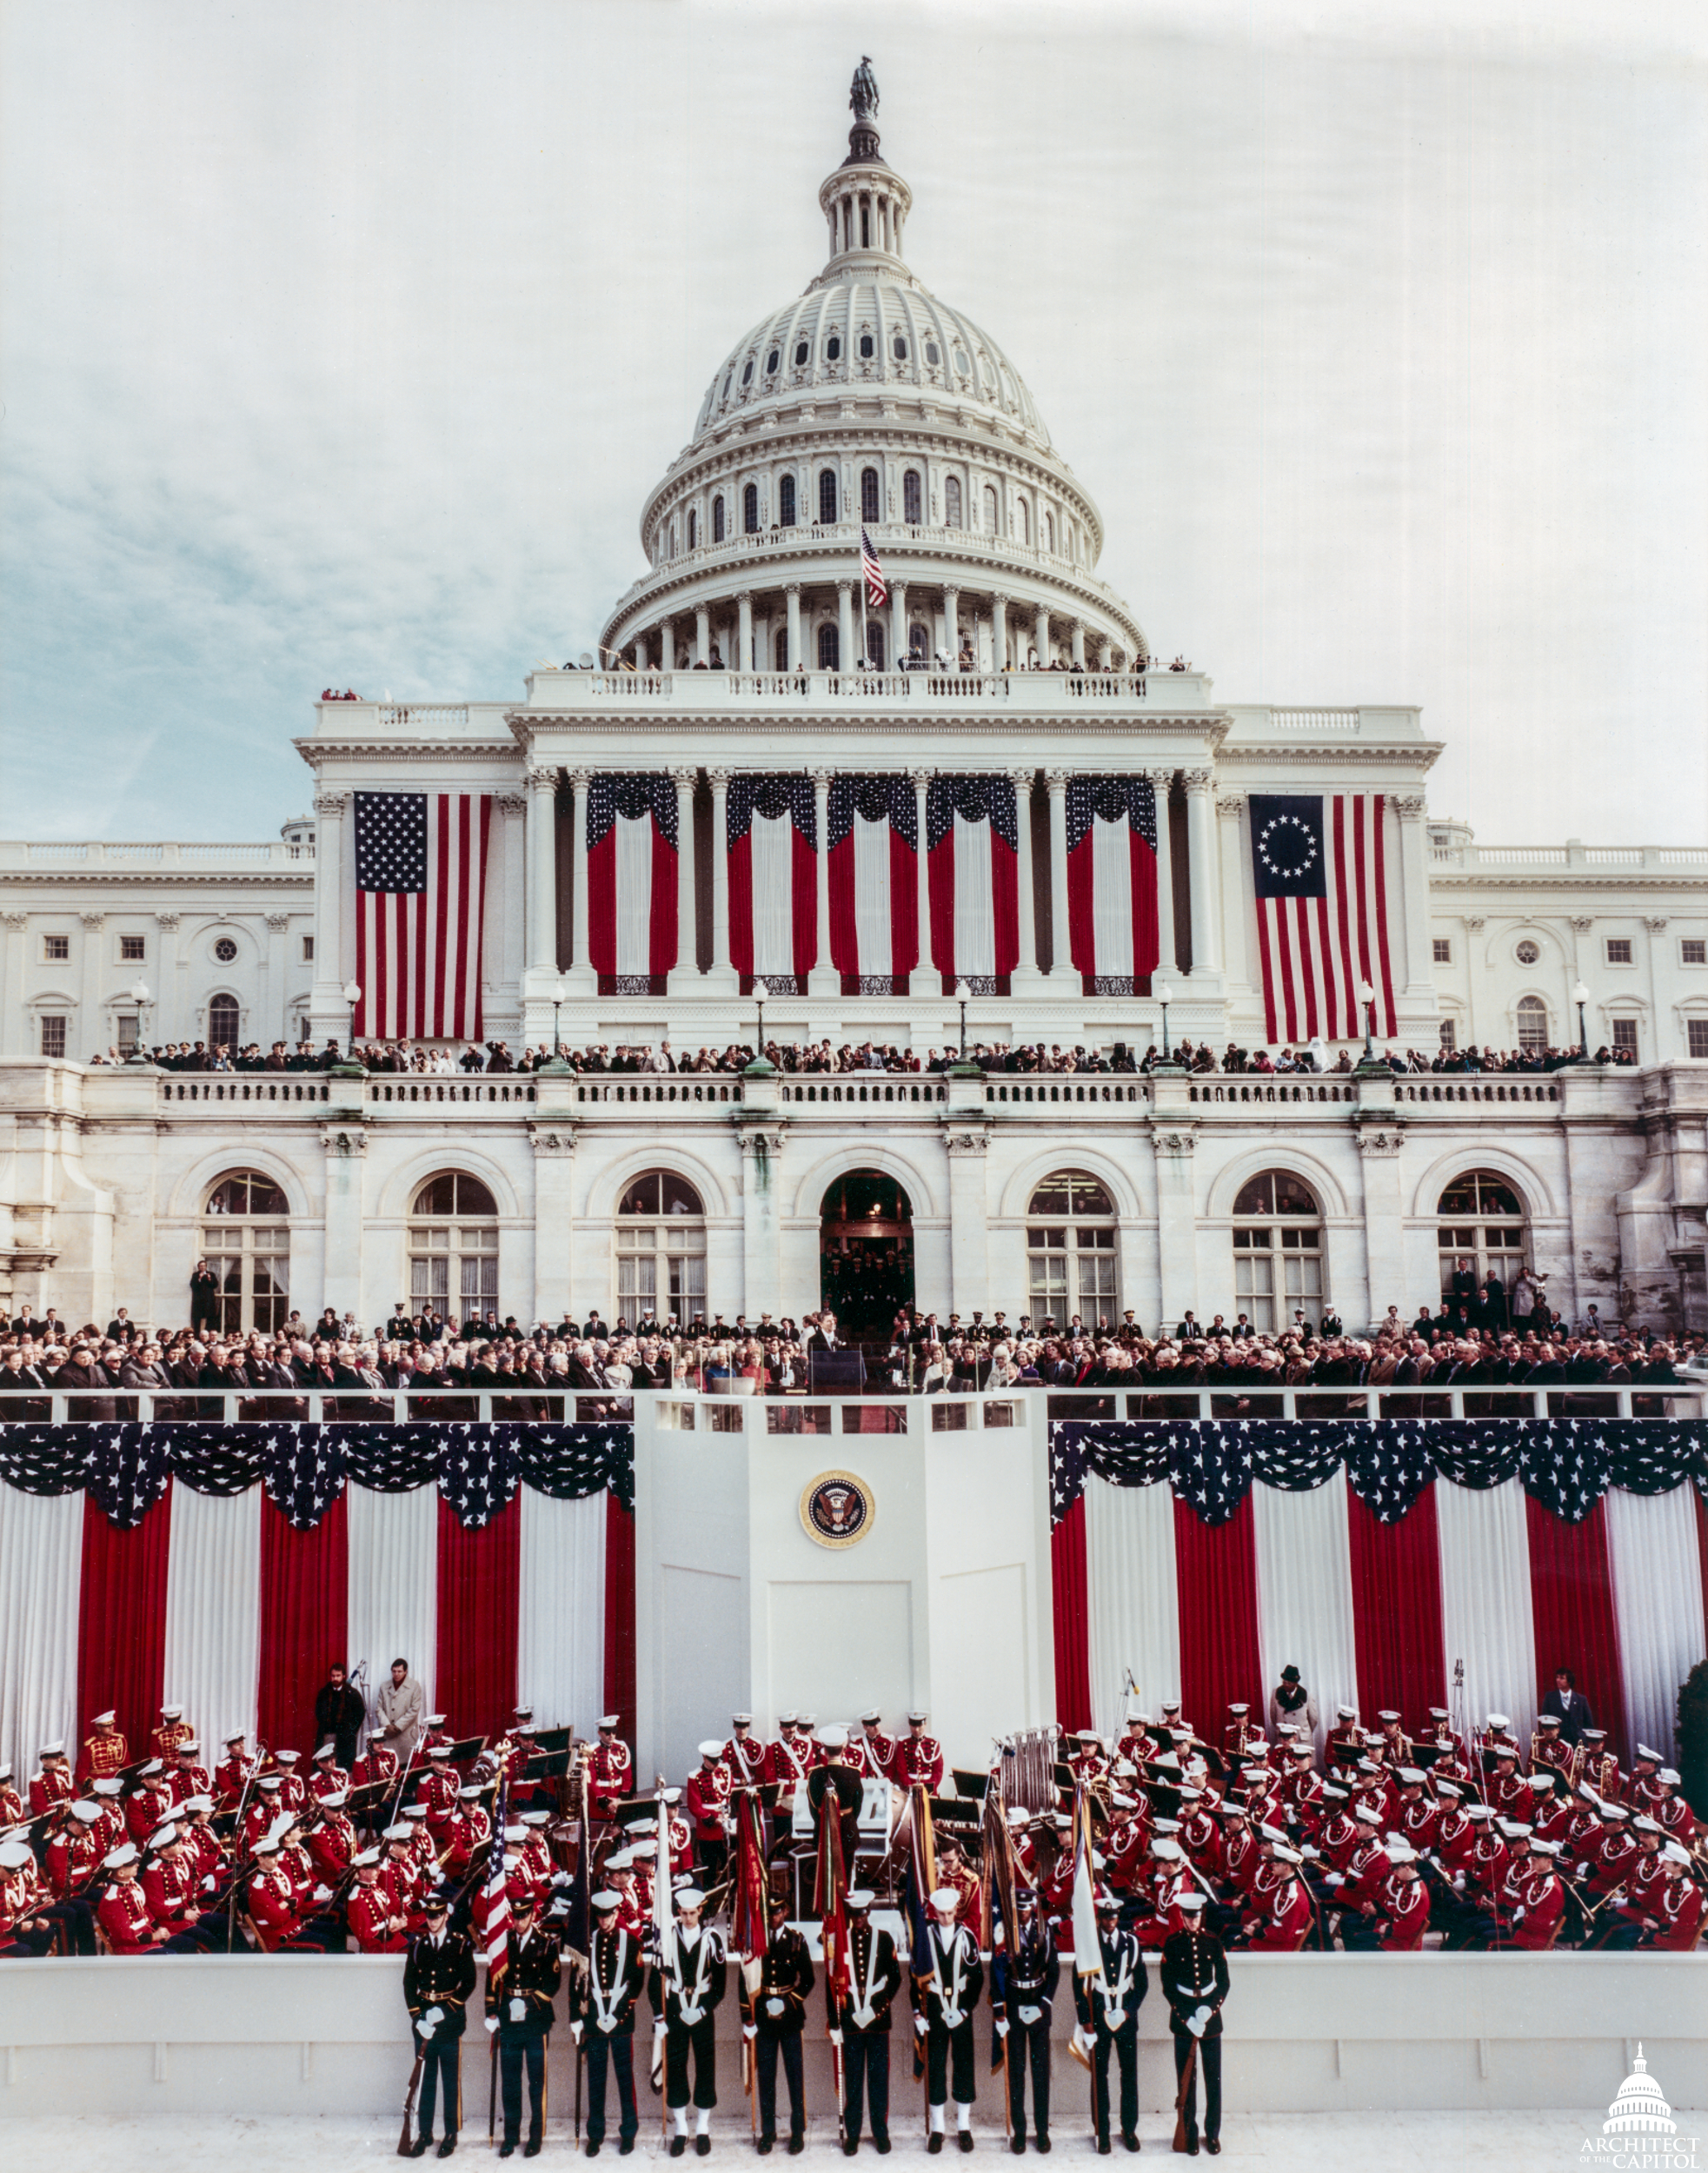 President Ronald Reagan's inauguration at the U.S. Capitol 1981.